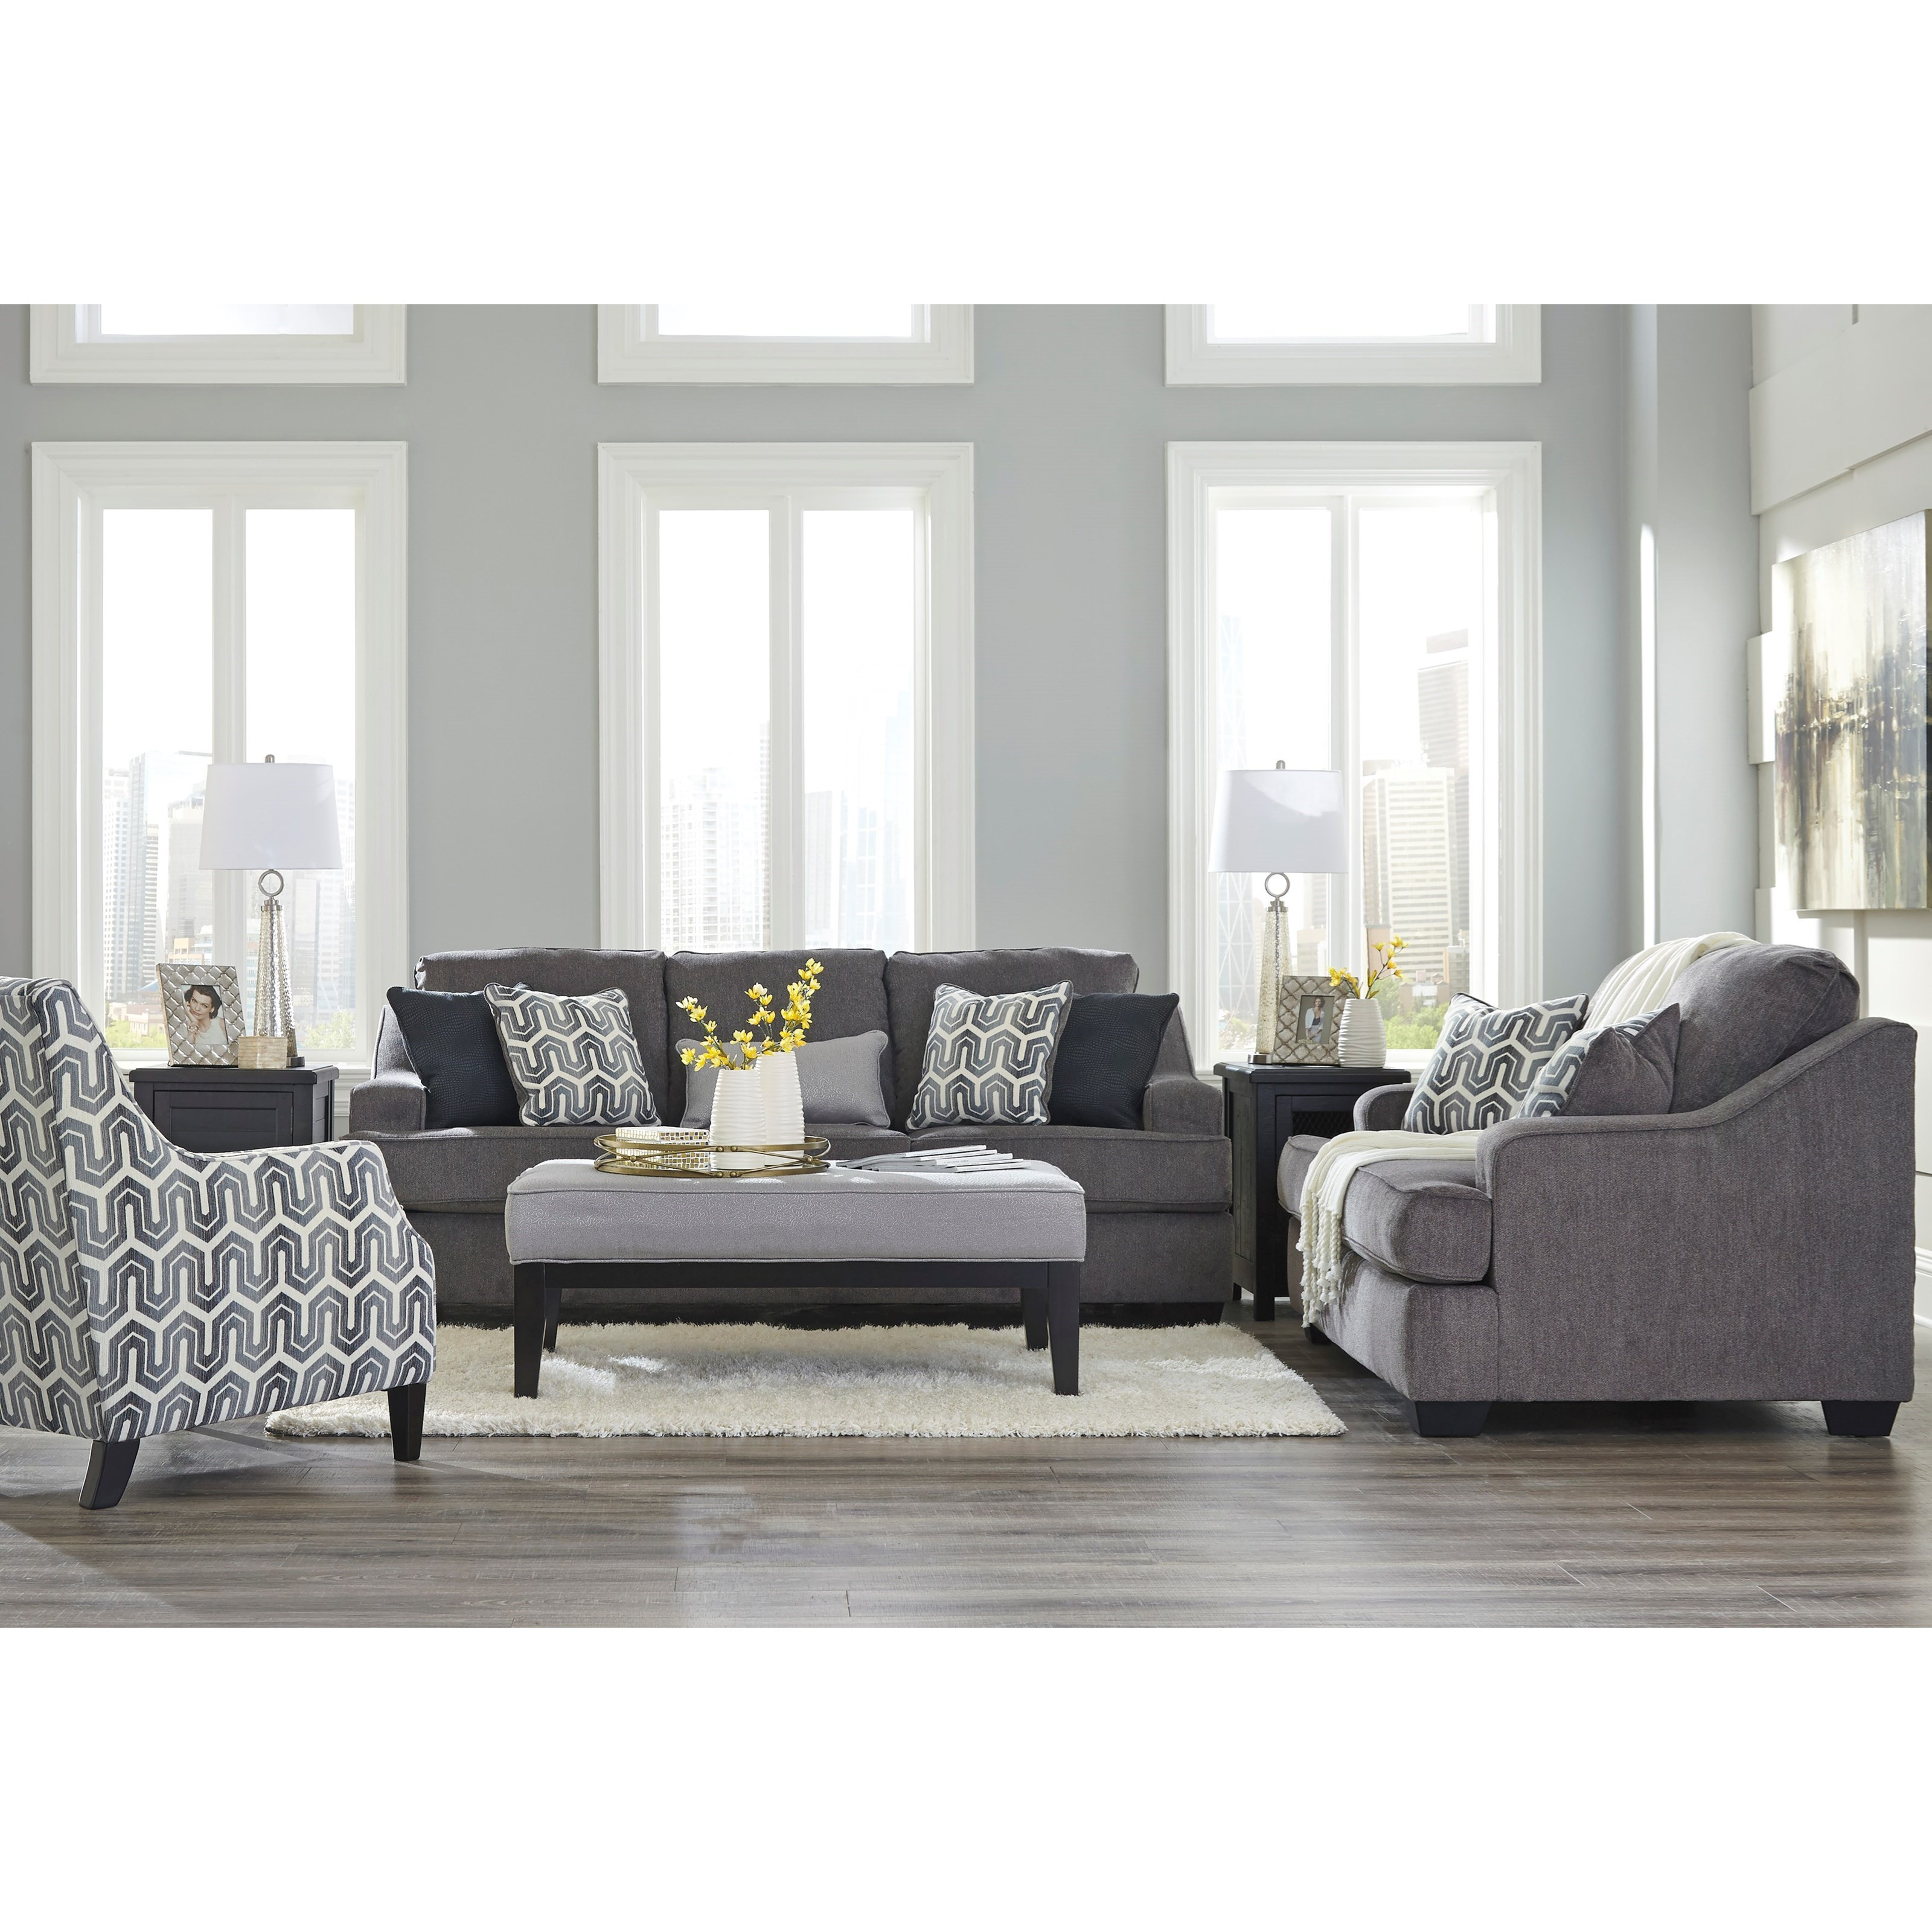 Signature Design By Ashley Gilmer Stationary Living Room